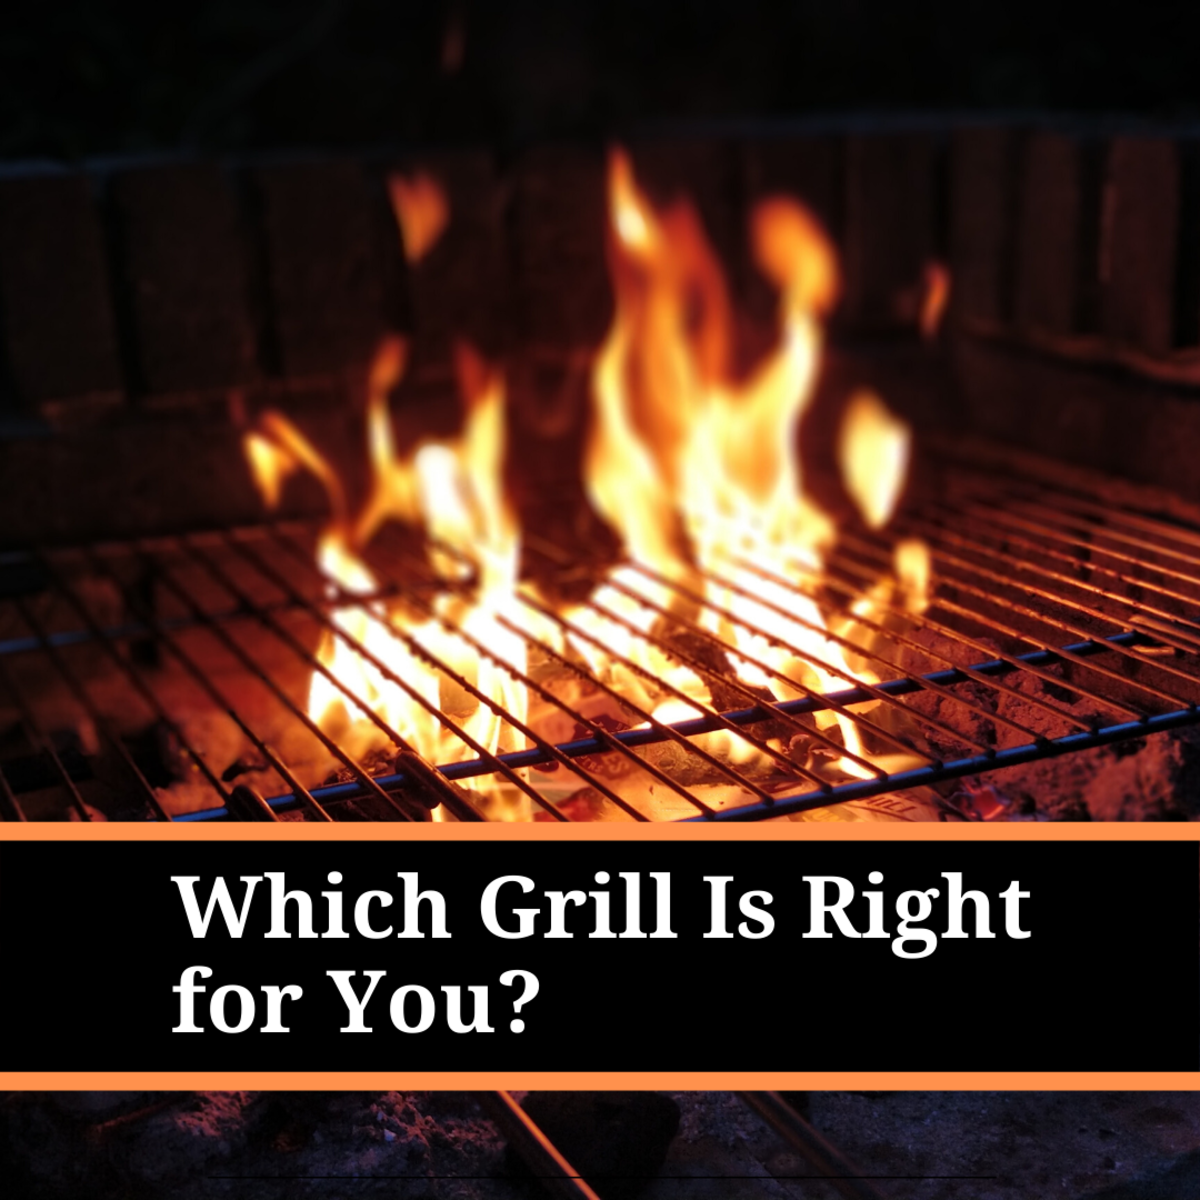 Which Grill Is Right for You? Charcoal, Propane, or Infrared Propane?